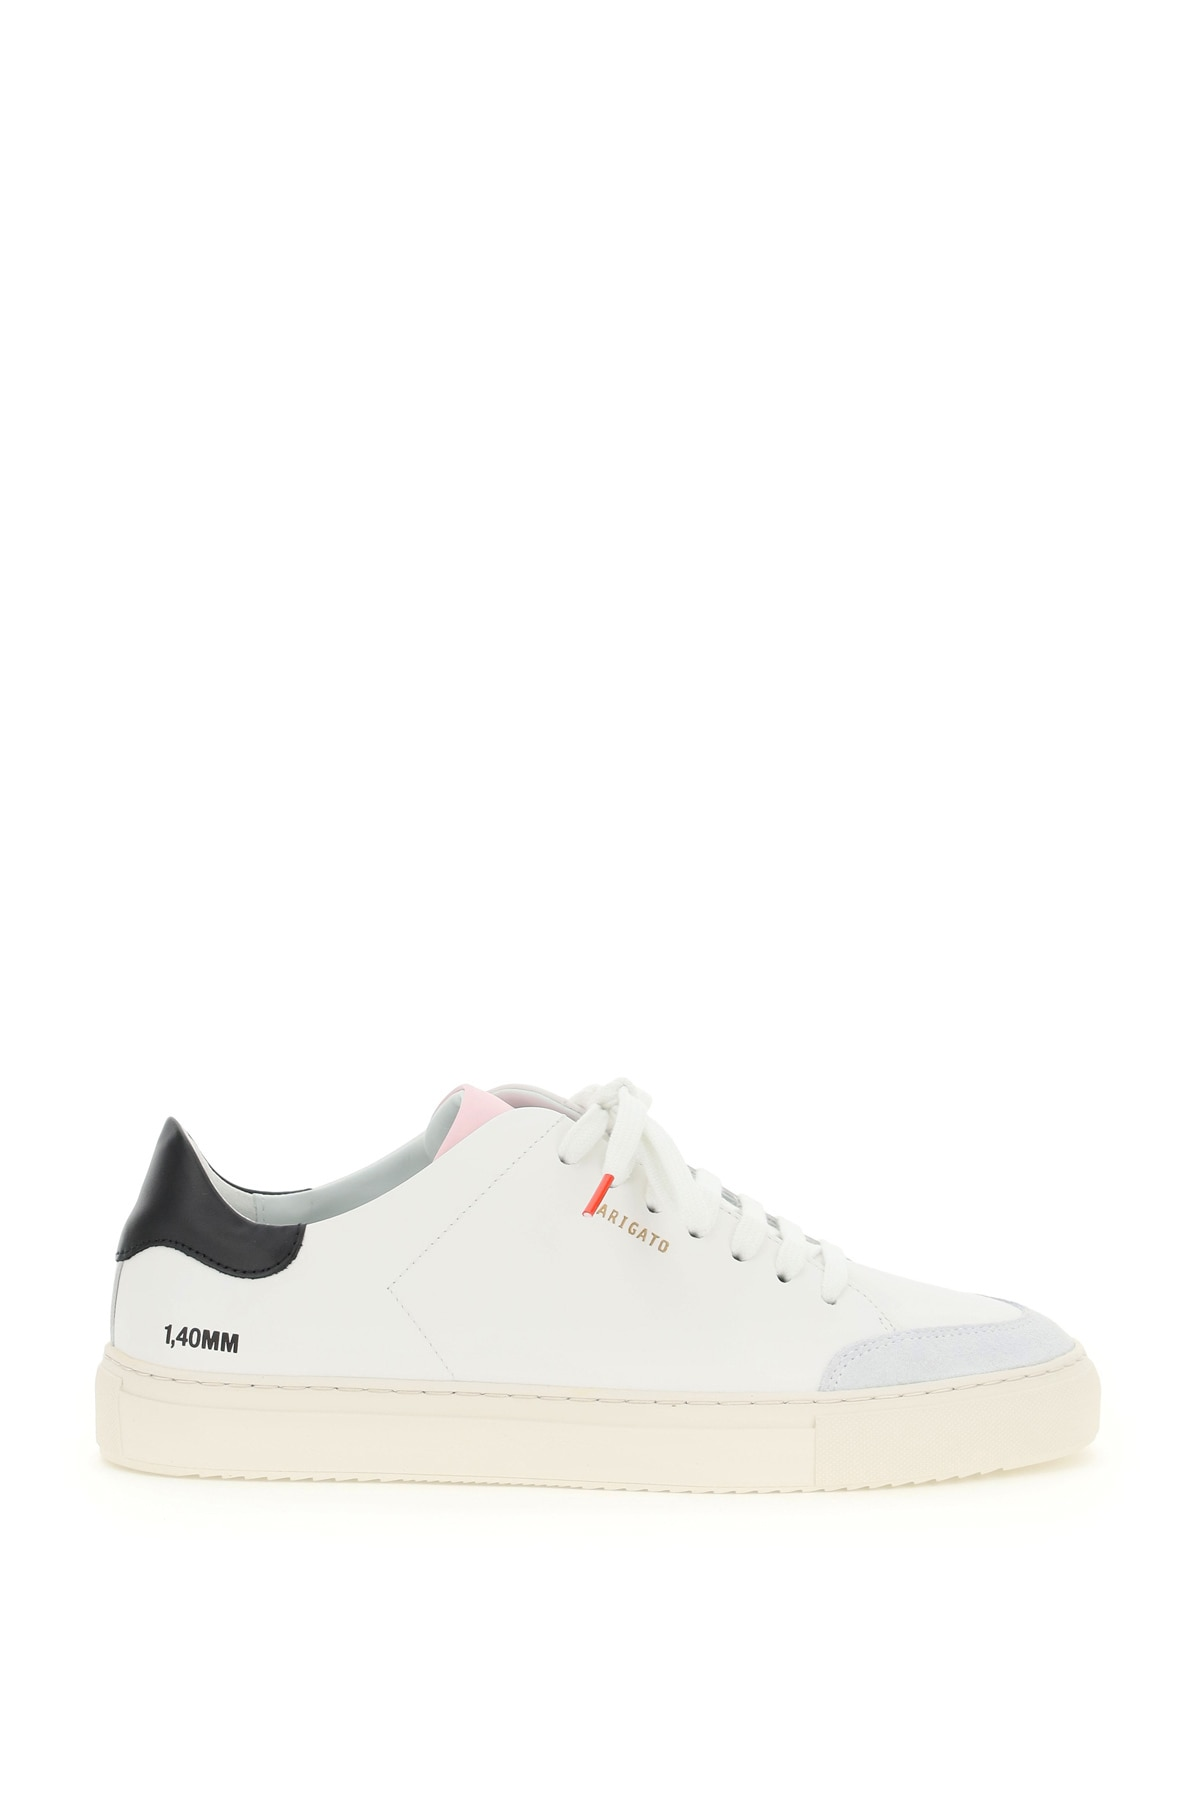 AXEL ARIGATO CLEAN 90 CONTRAST SNEAKERS 41 White, Pink, Black Leather